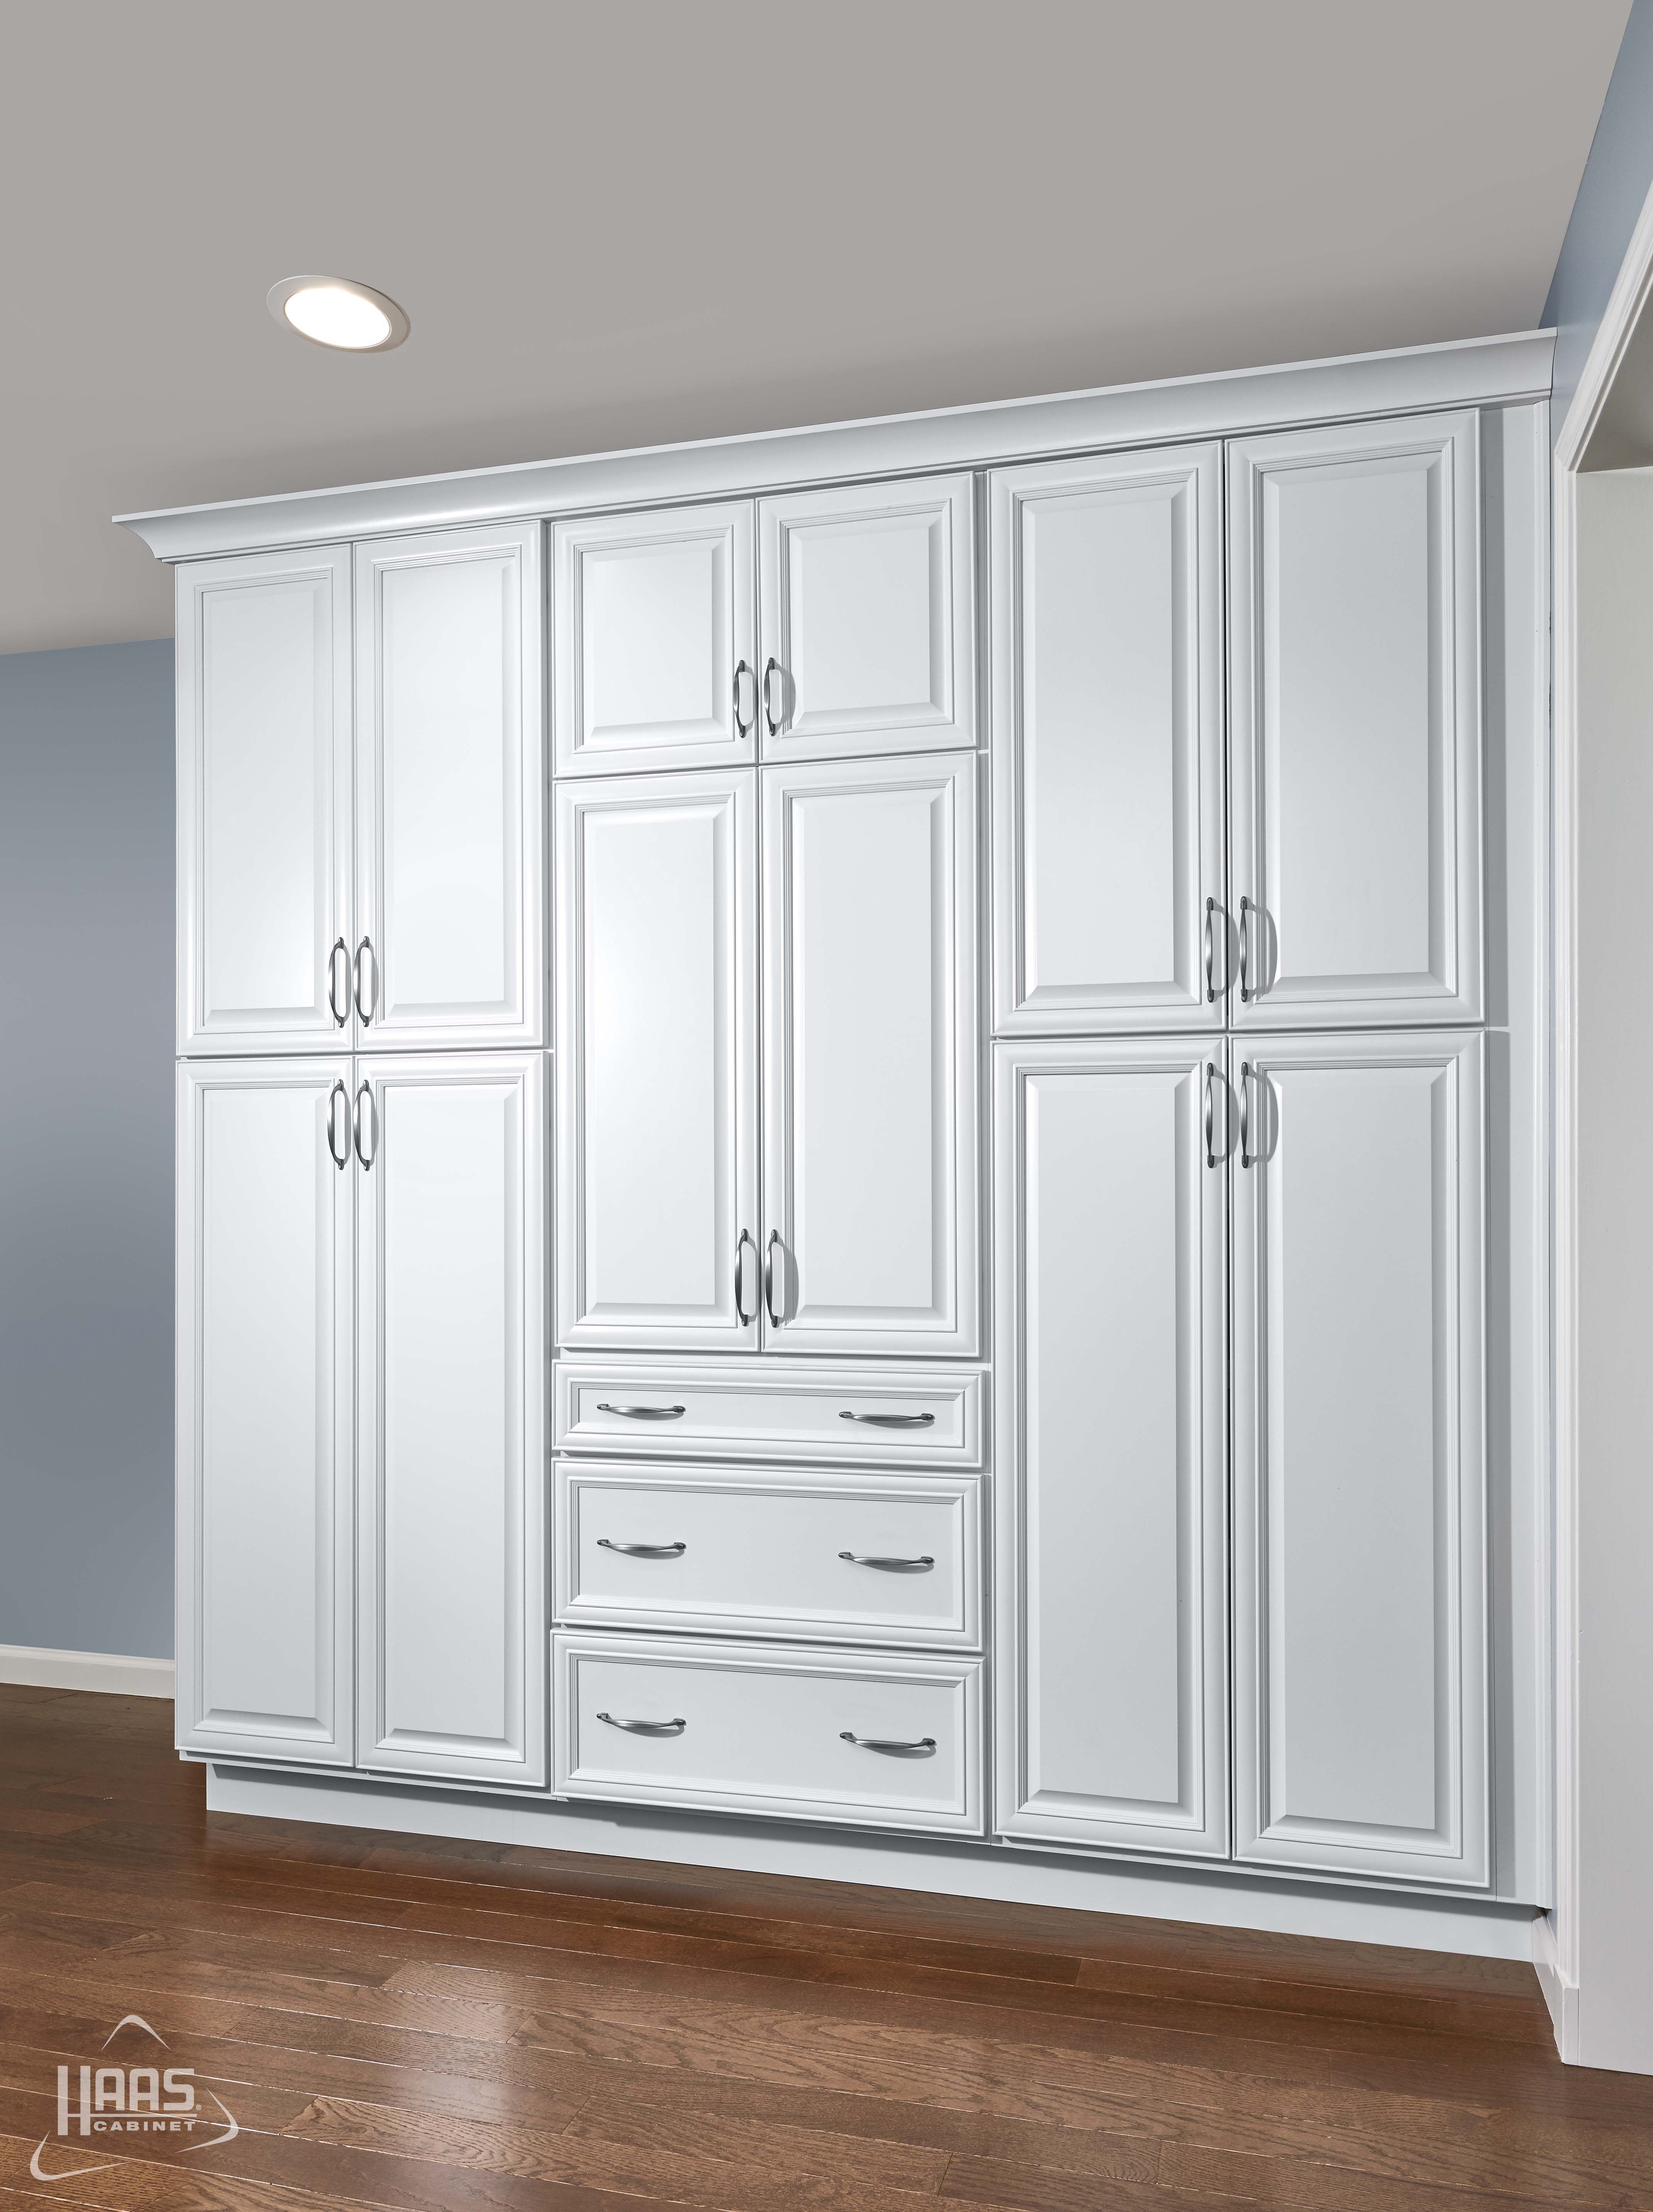 High Quality Exterior Doors Jefferson Door: Door Style: Jefferson, Wood Species: Maple, Finish: Bistro